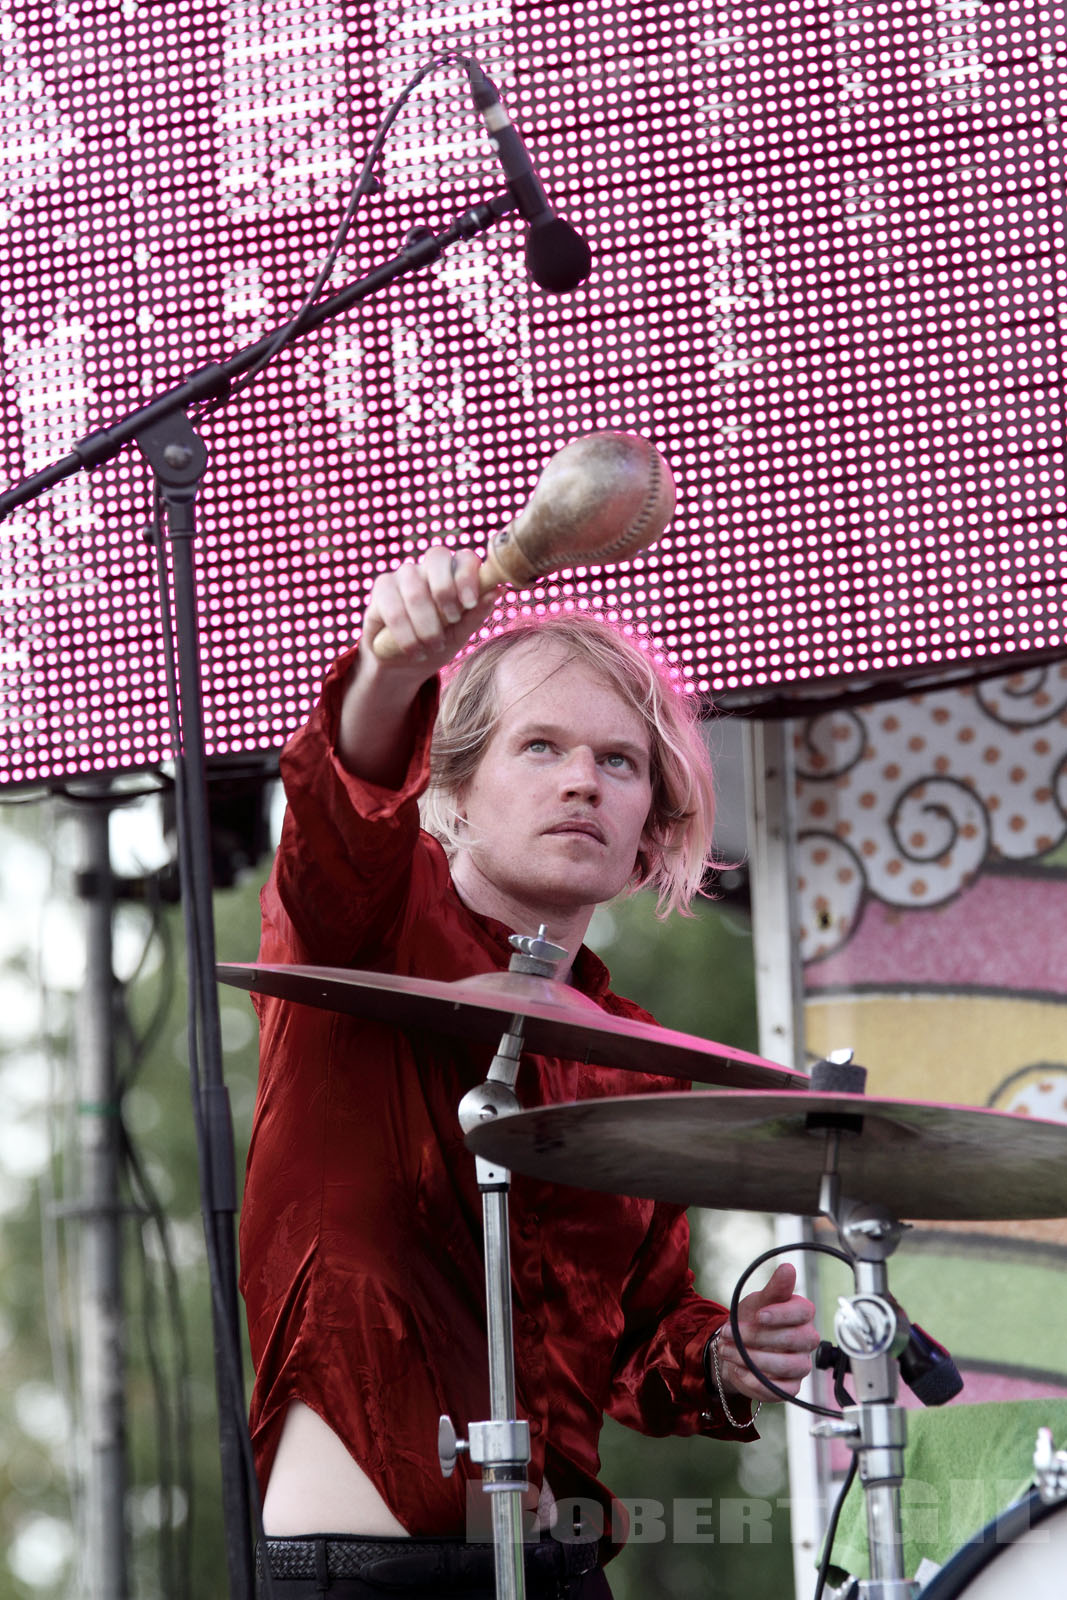 CONNAN MOCKASIN - 2011-09-10 - PARIS - Parc de Bagatelle